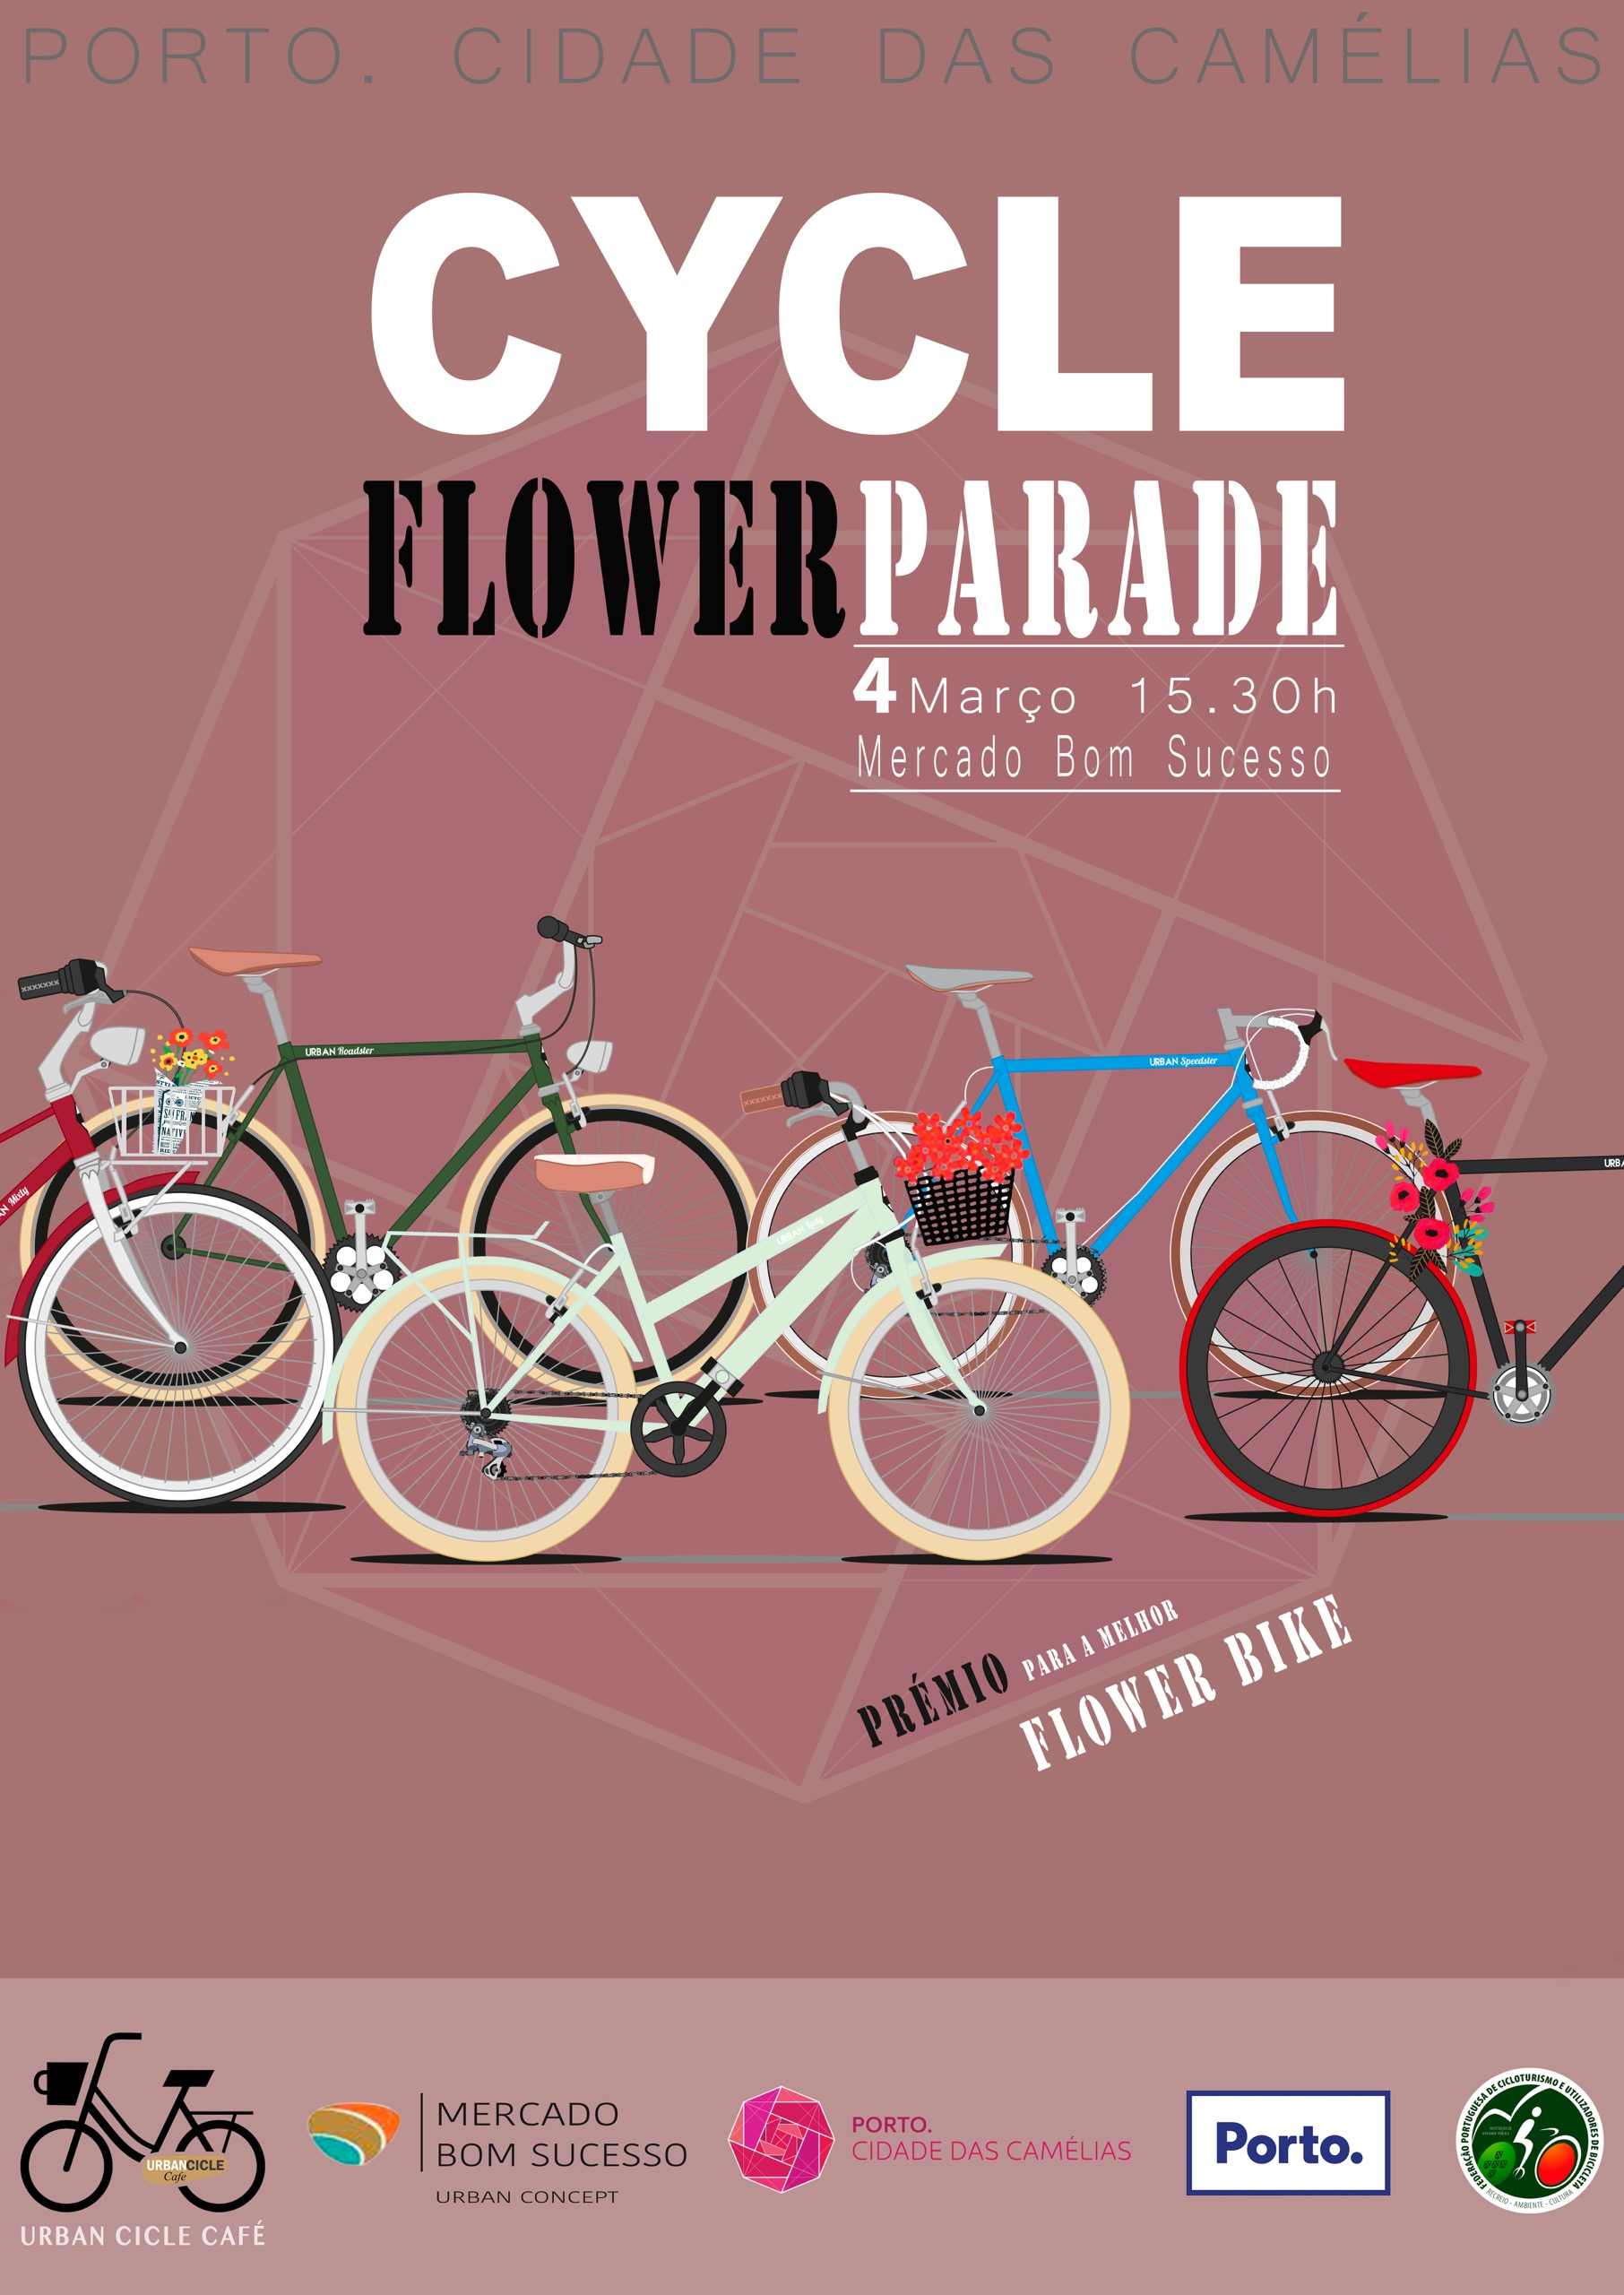 Cycle Flower Parade